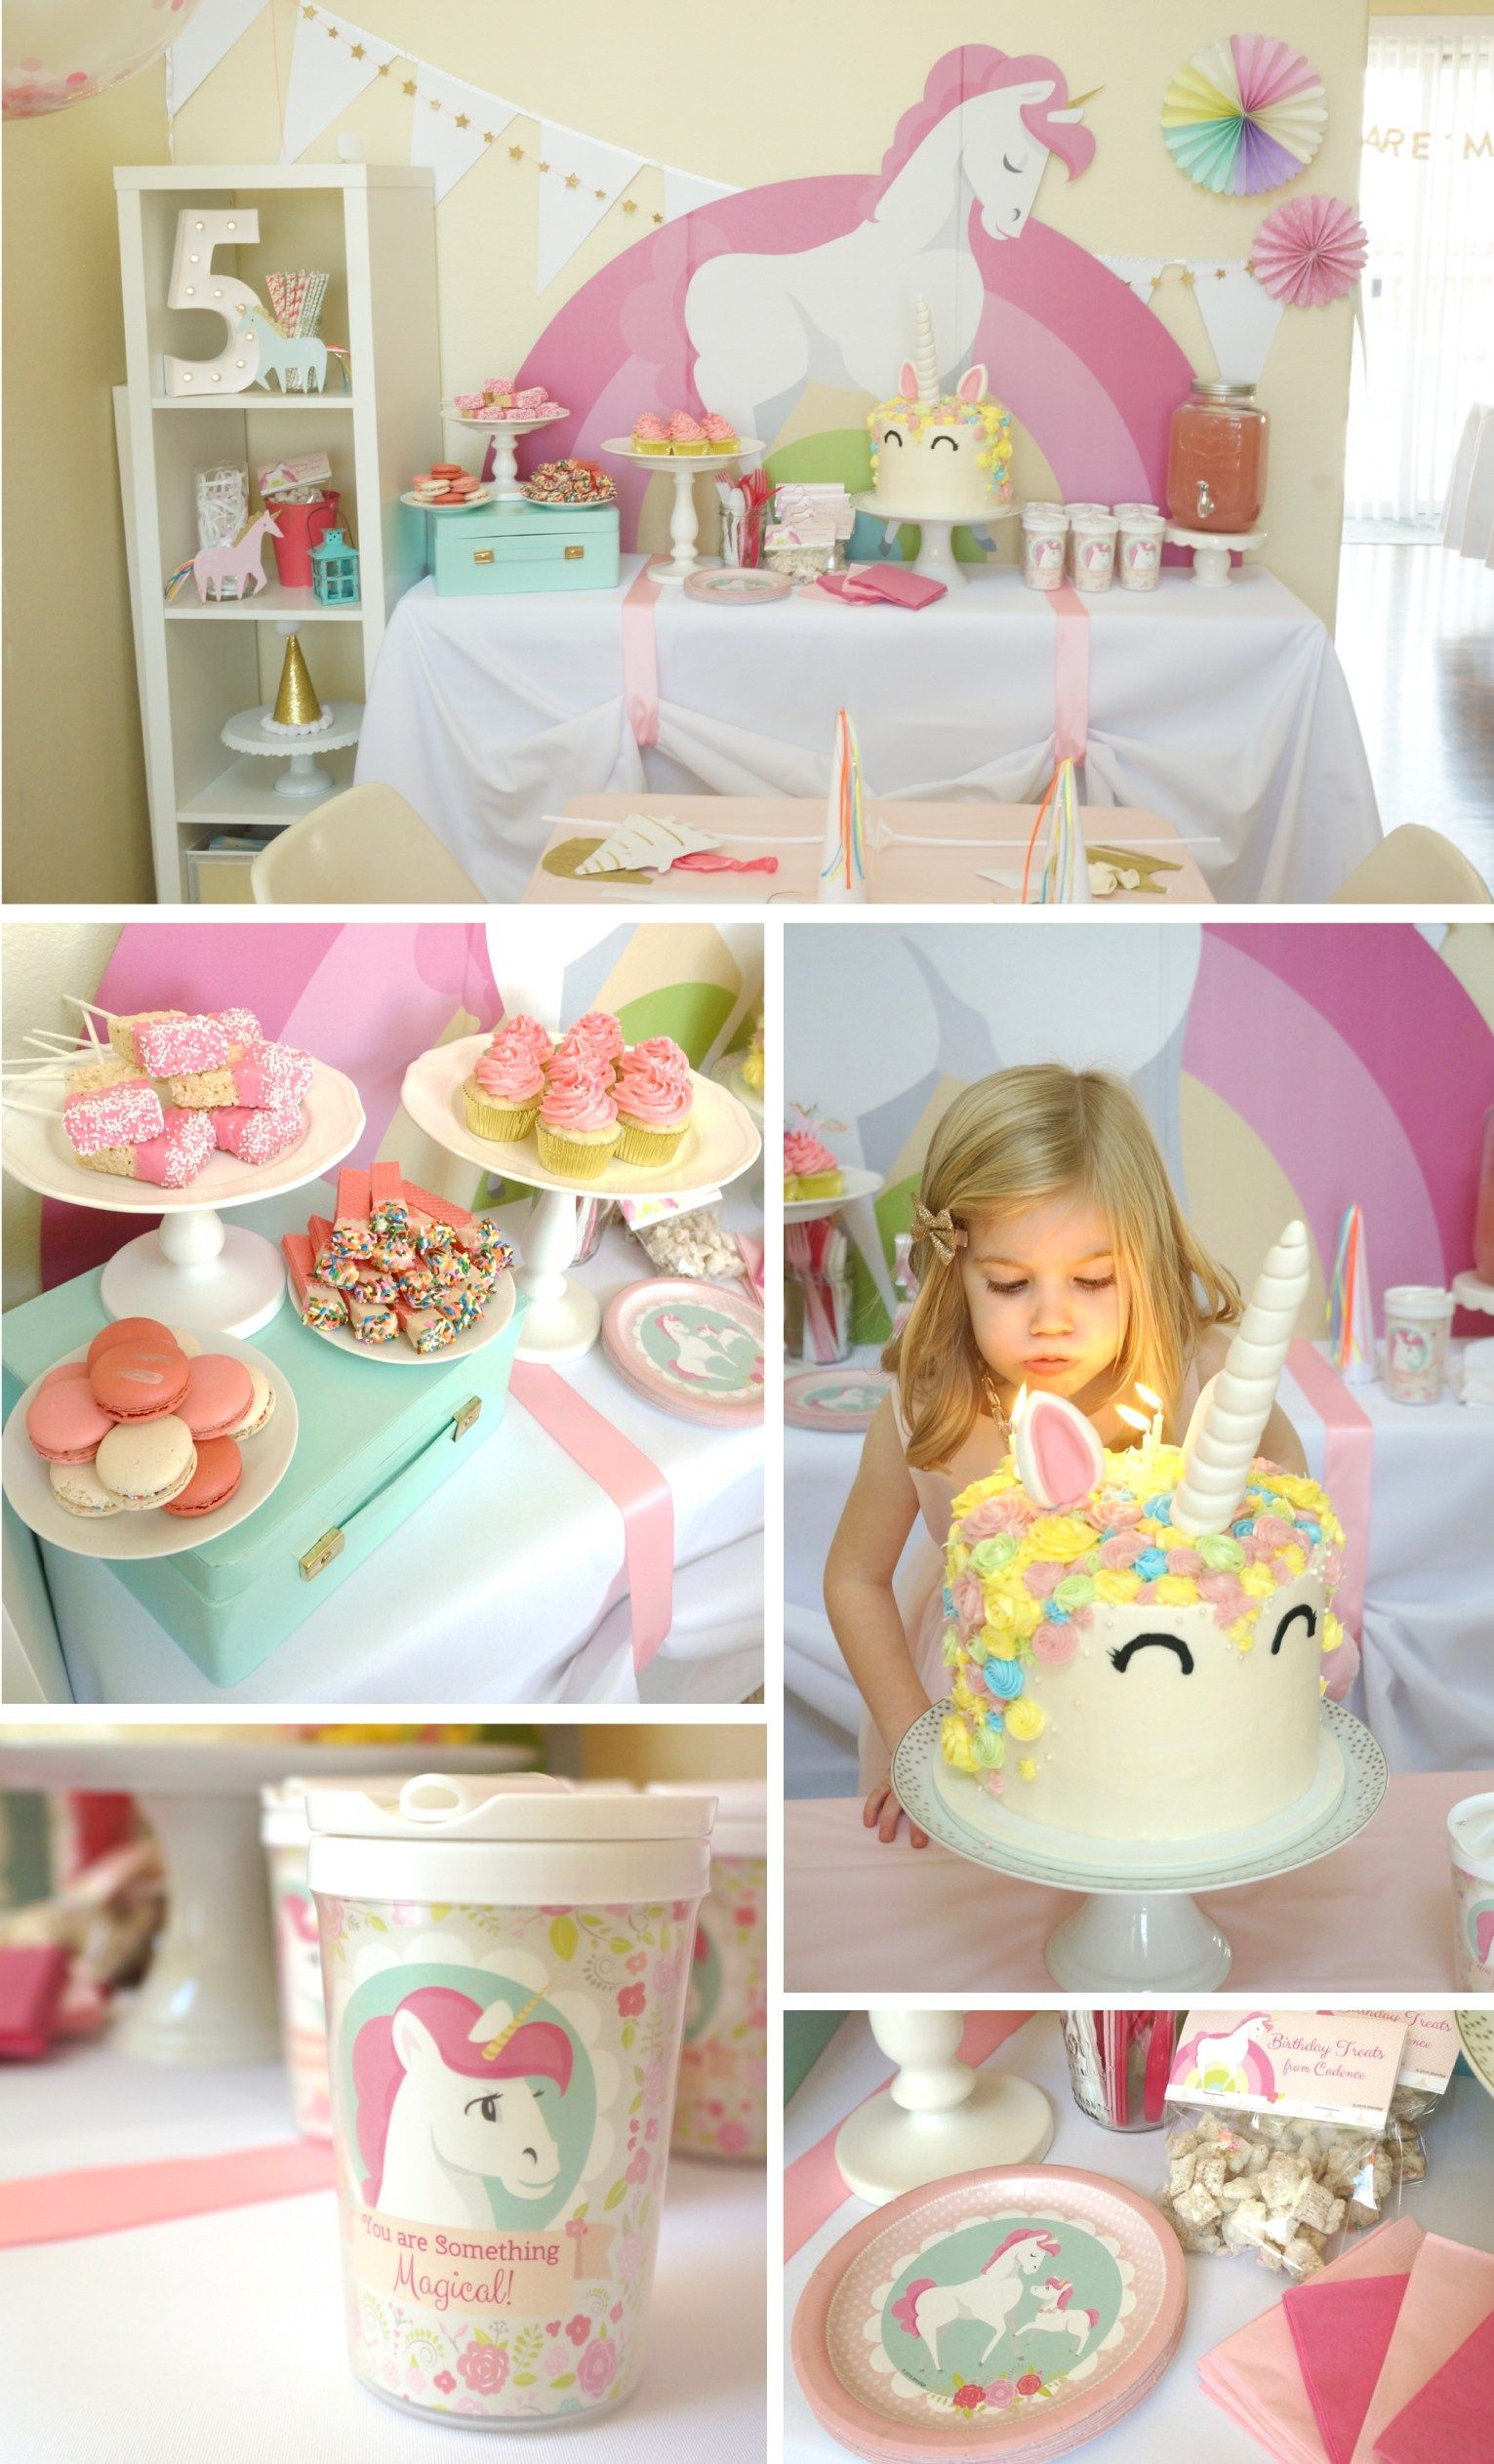 4 Year Old Girl Birthday Party Ideas